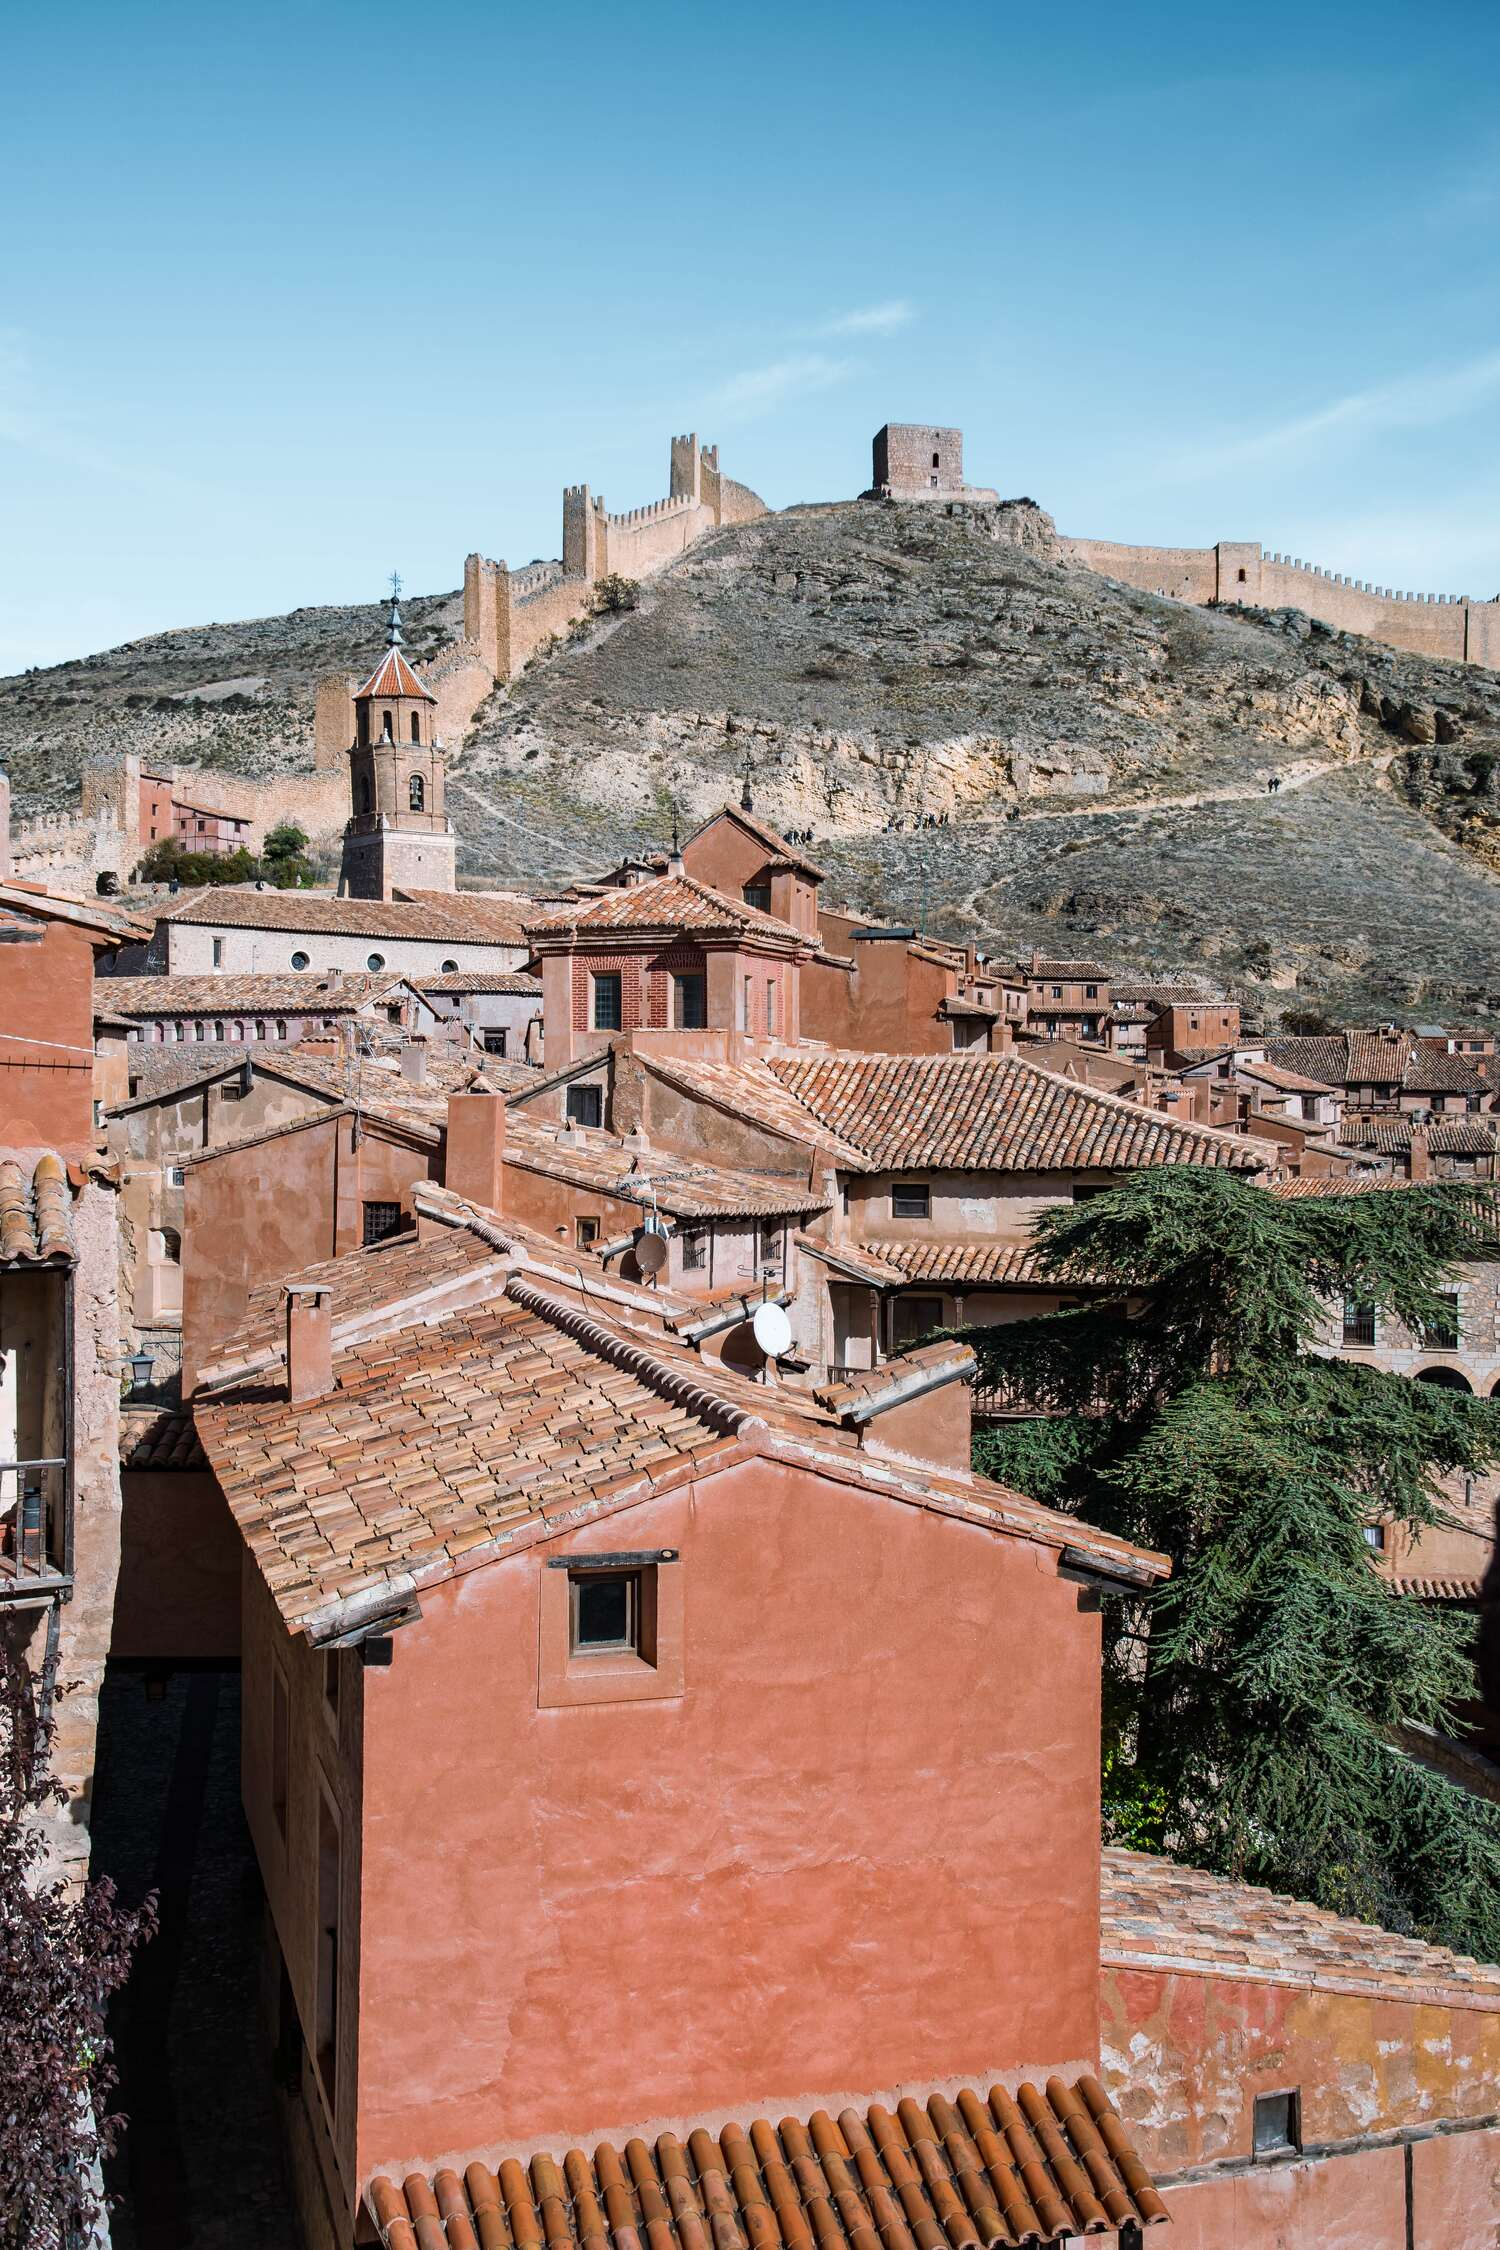 The view from the Catedral de Albarracín up to the city Wall in Albarracin in Spain.